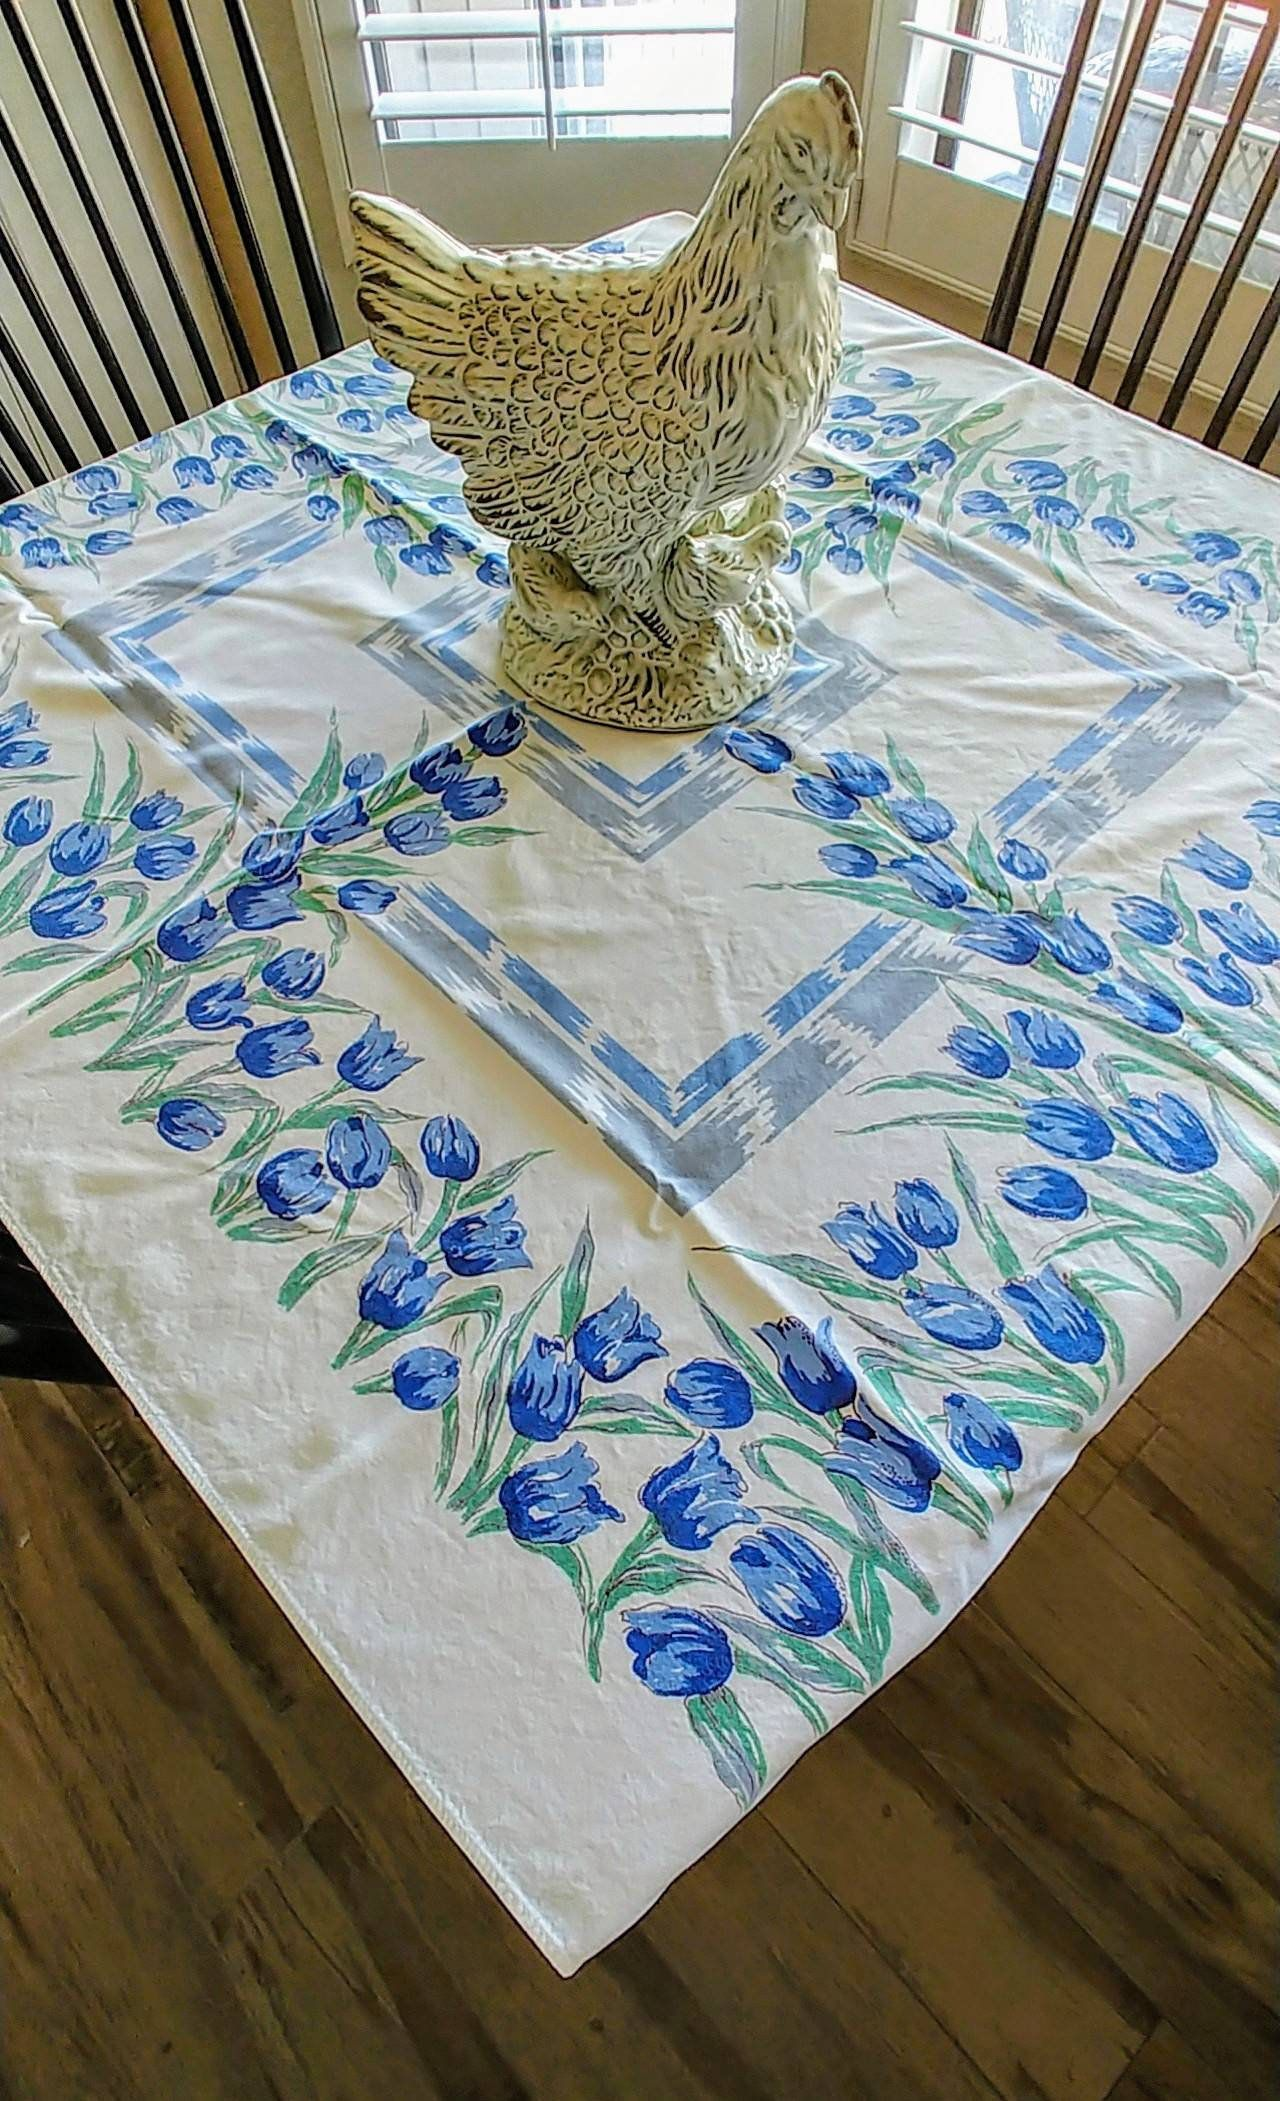 Adorable Vintage 1940 50 S Easter Farmhouse Tablecloth White With Blue Tulips Print Rectangle 51 X 43 Inches Perfect For Tea Party In 2020 Farmhouse Tablecloths Blue Tulips Tulip Print